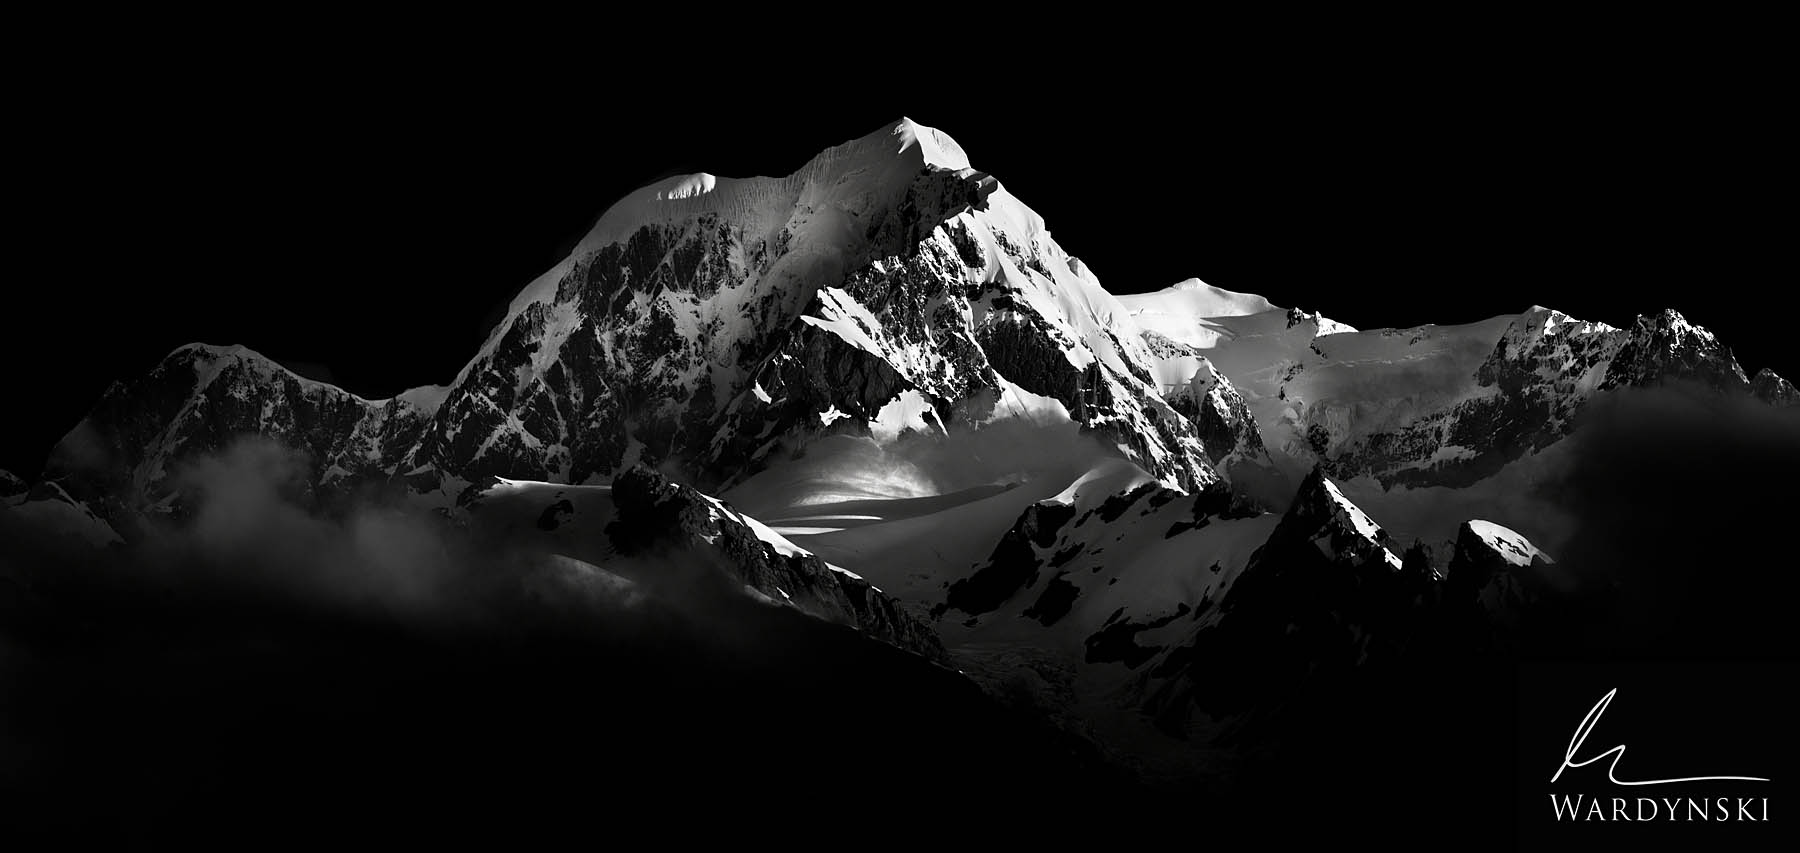 Black and White Fine Art Print | Limited Edition of 25  Morning light strikes the eastern face of the Southern Alps in New Zealand...